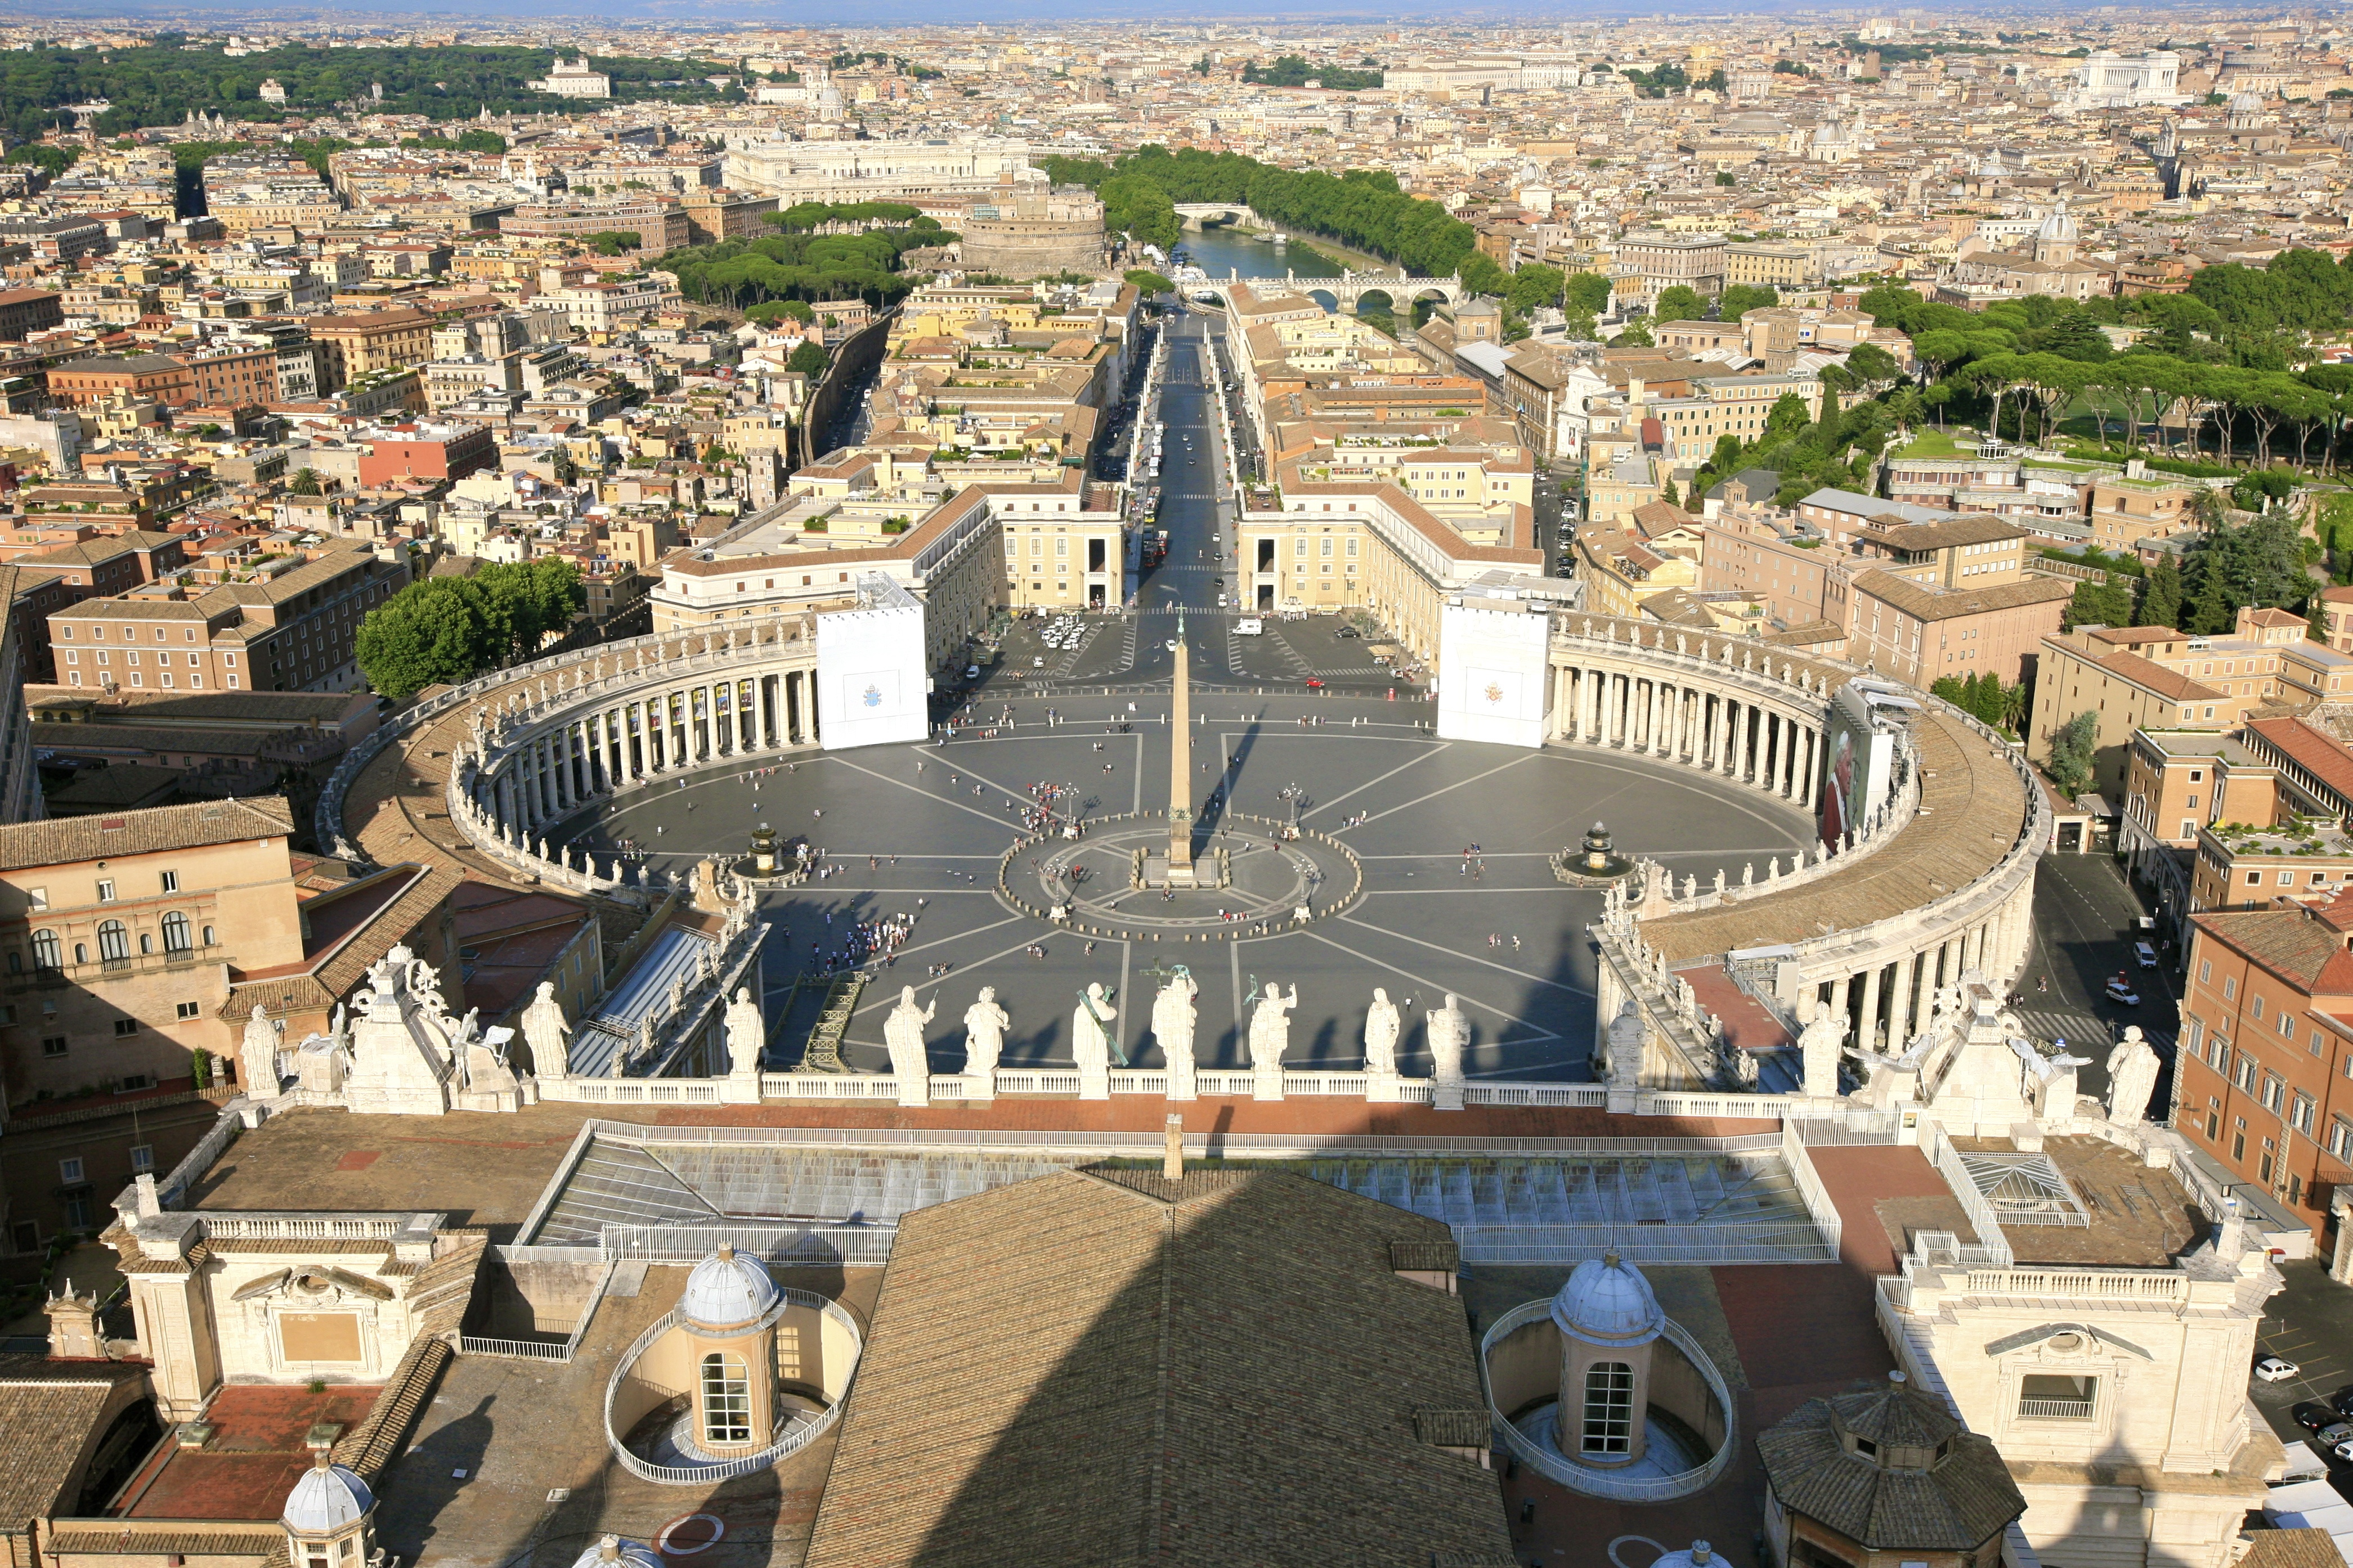 File:Overlooking the Vatican City (5940864021).jpg - Wikimedia Commons